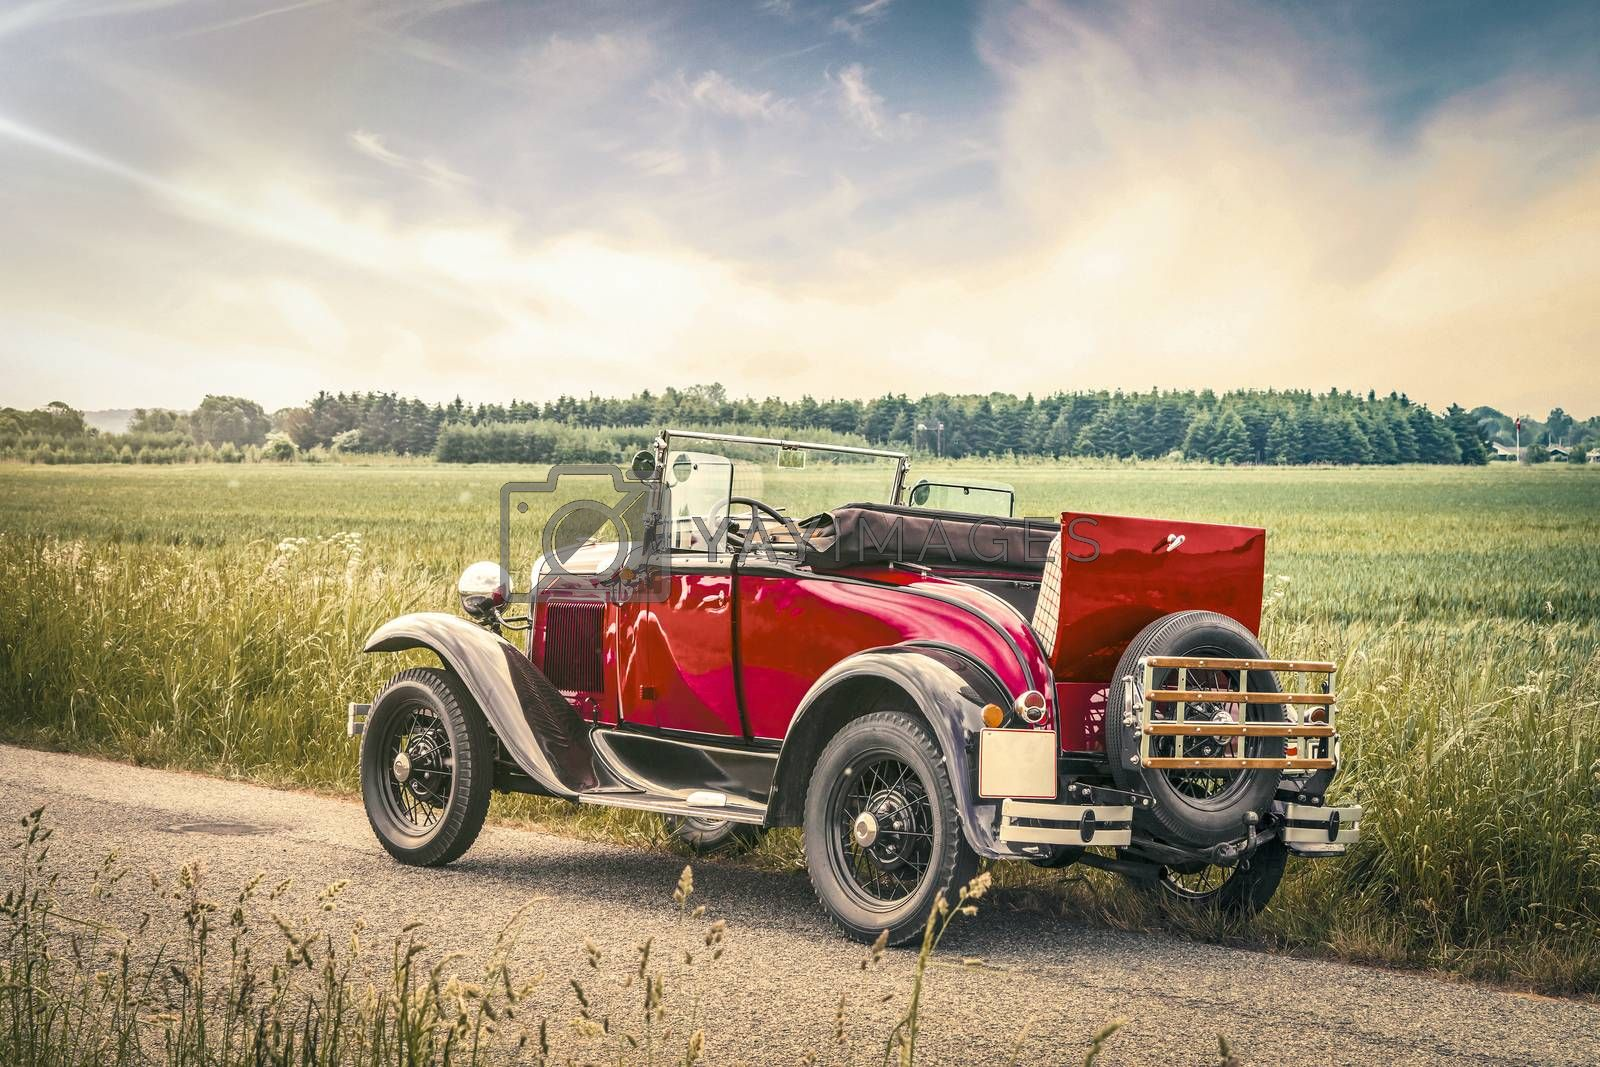 Antique red car on a road in a countryside landscape in the sunset